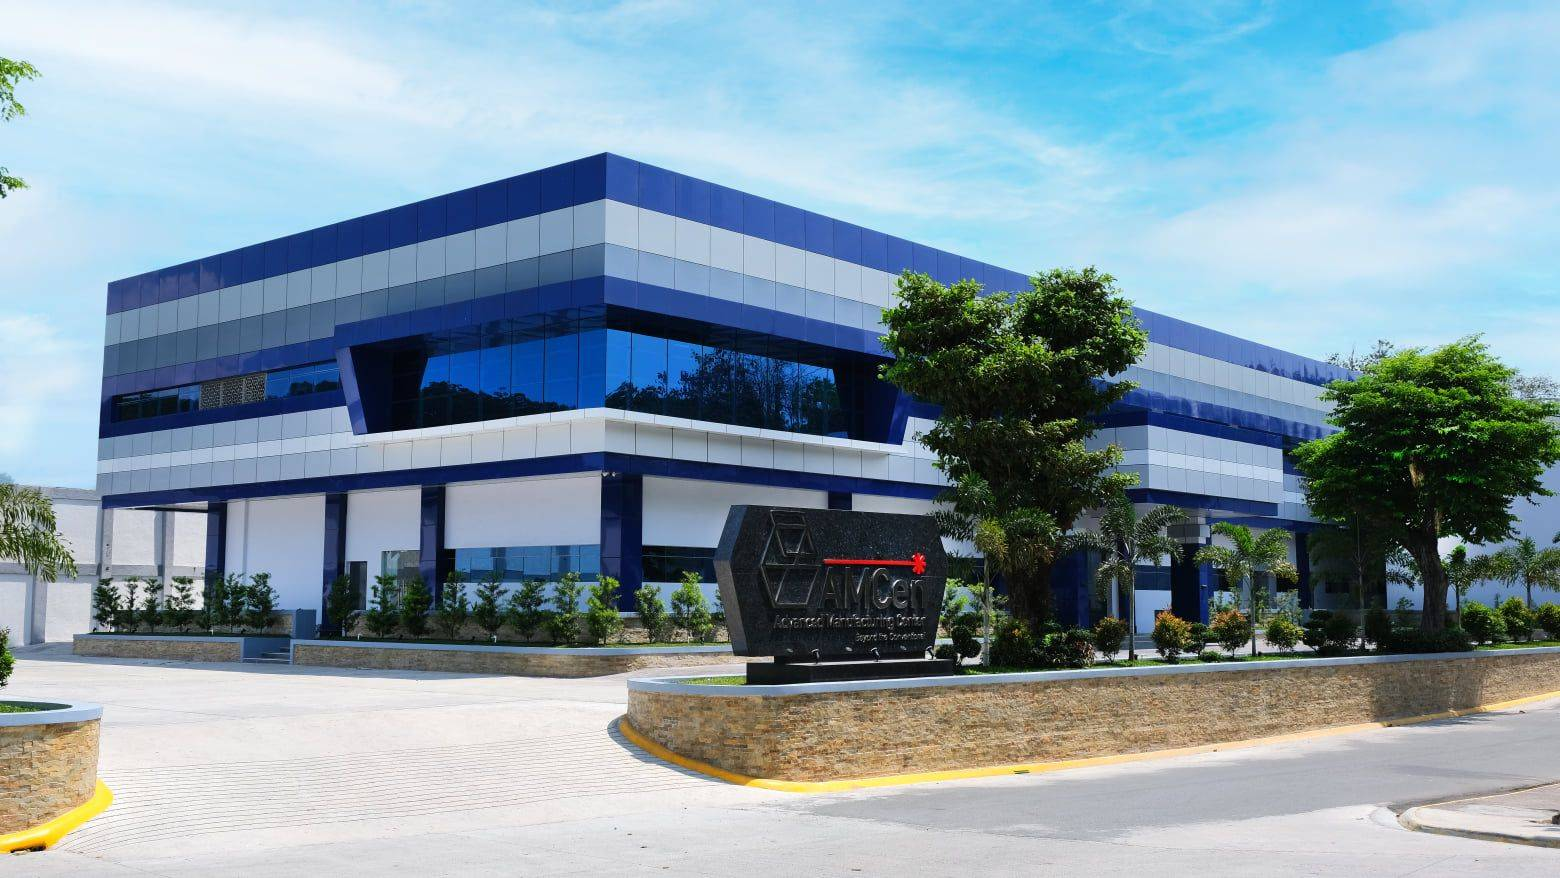 DOST's new additive manufacturing center. Photo via DOST.